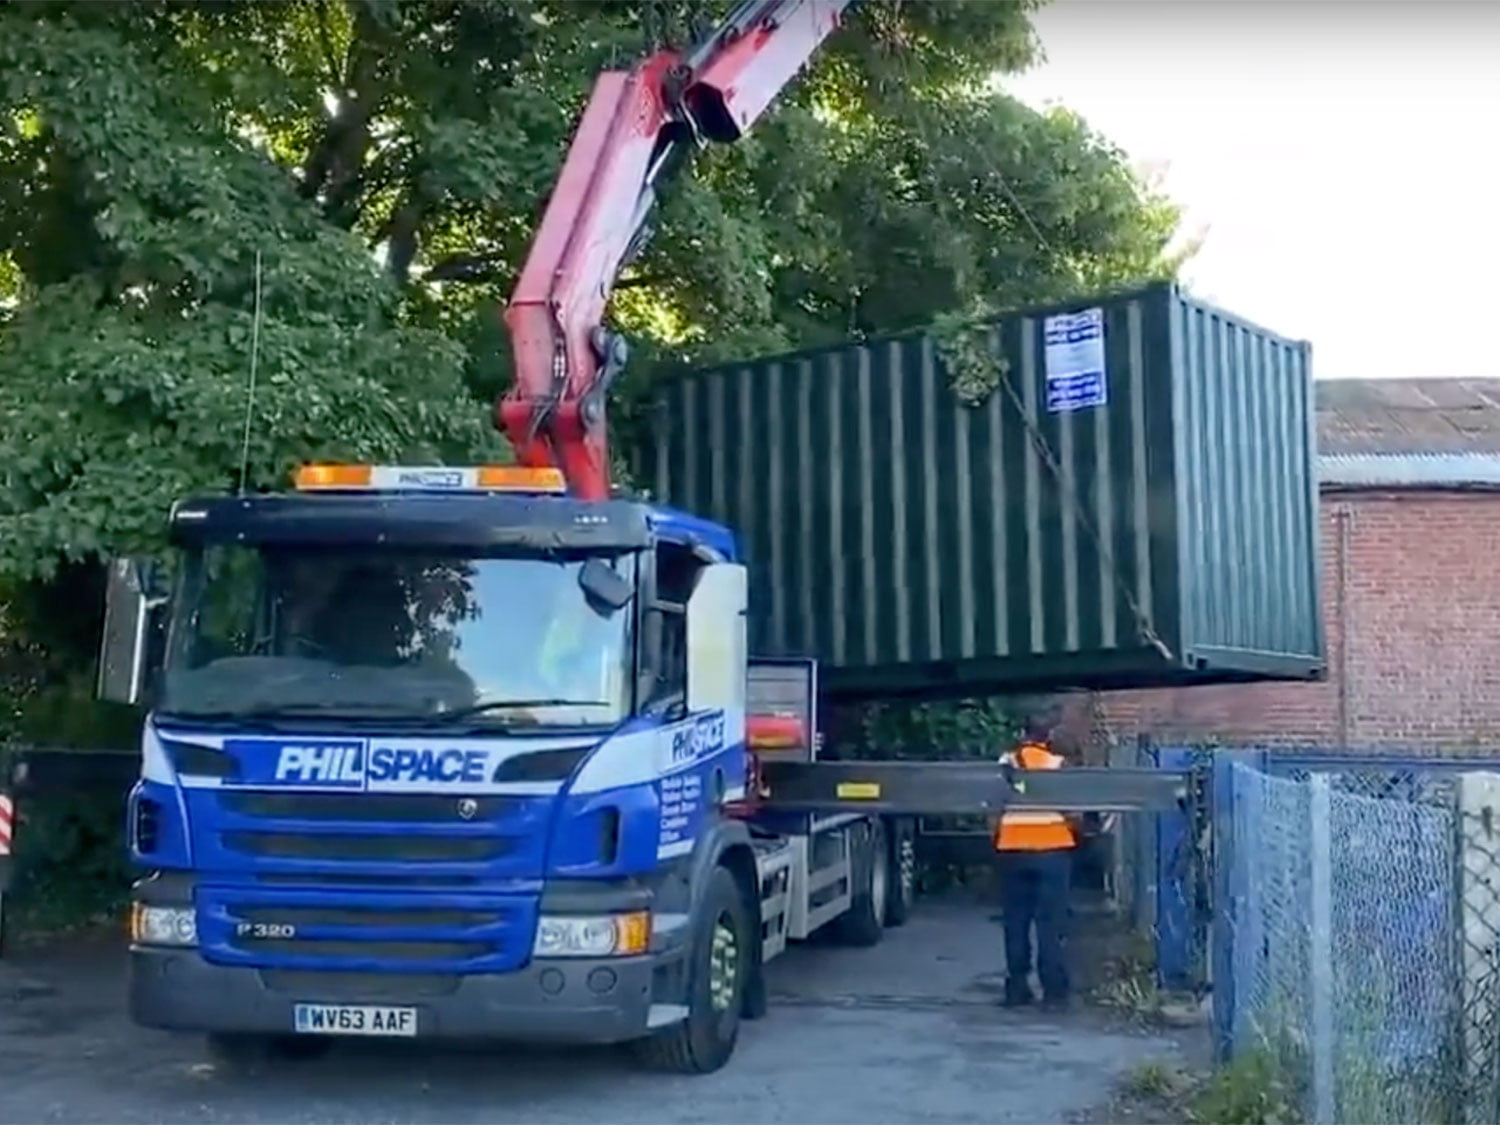 Philspace truck delivering storage unit for Meon Valley Food Bank